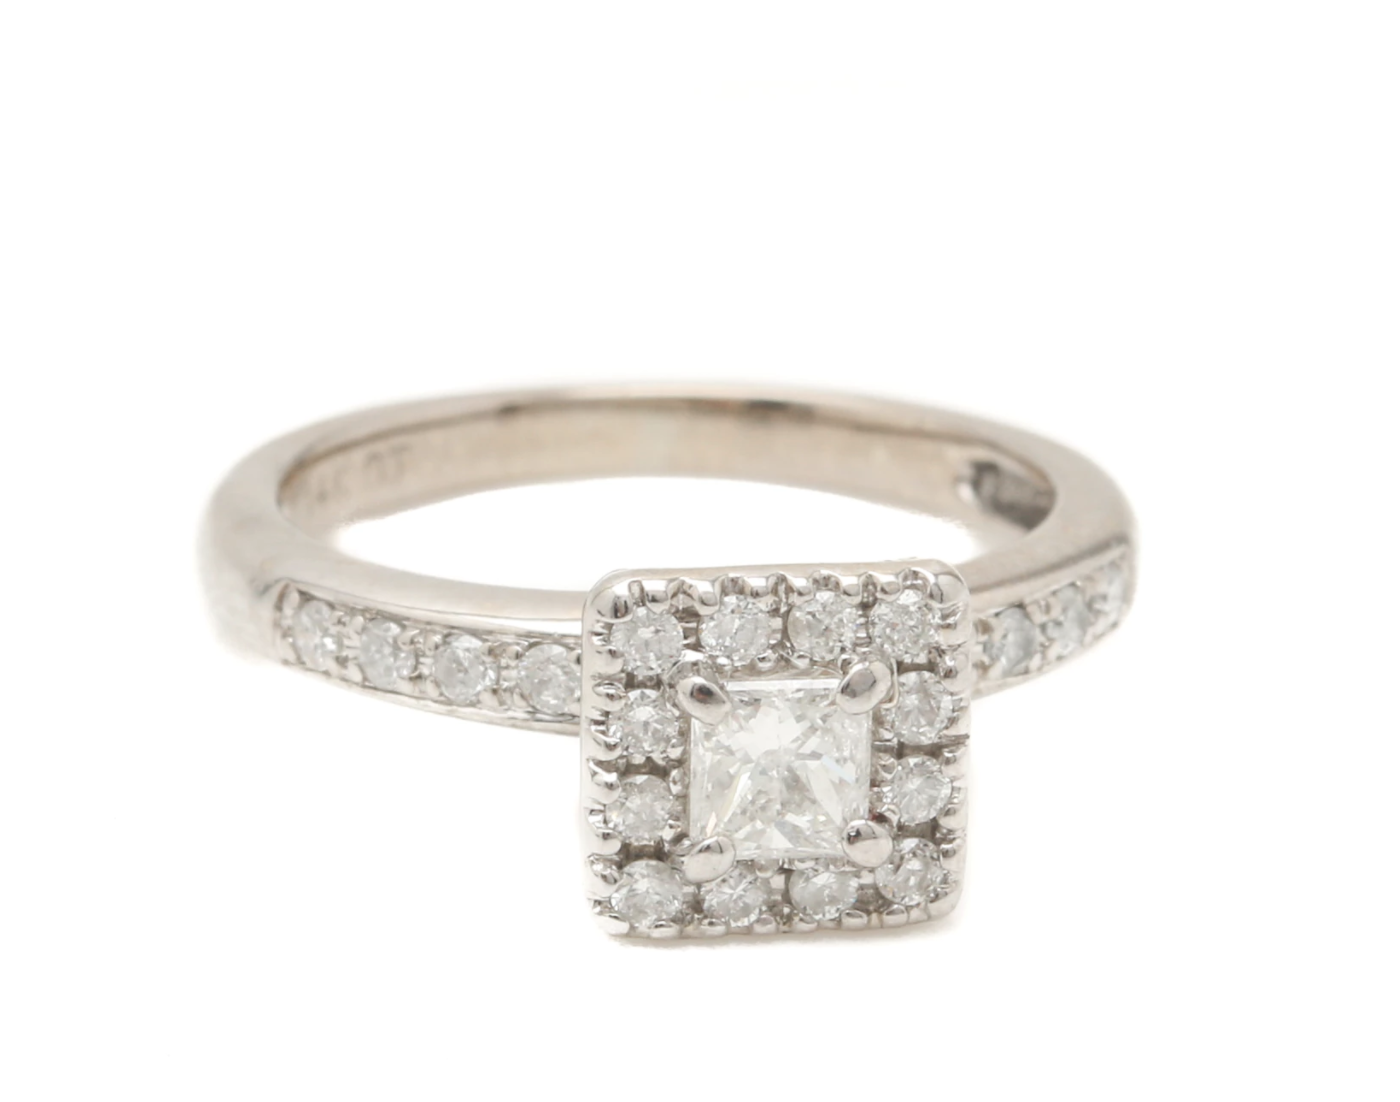 14k White Gold Diamond Ring. Current Bid Price: $70.